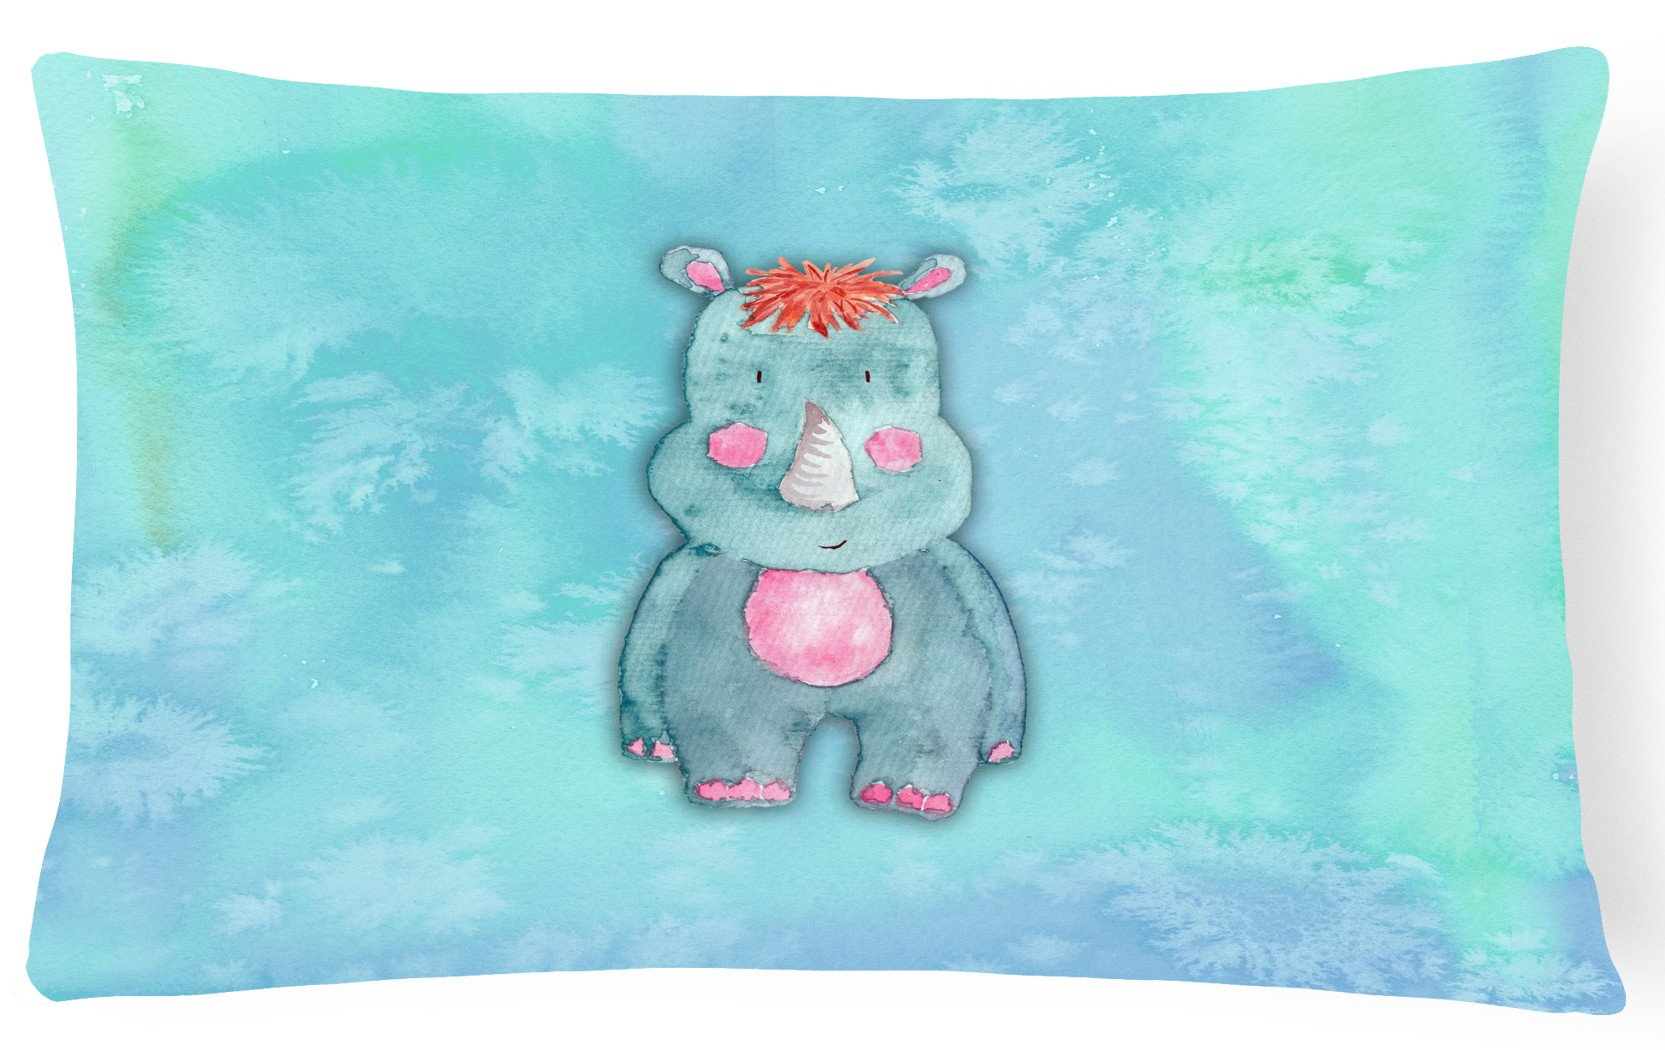 Rhinoceros Watercolor Canvas Fabric Decorative Pillow BB7381PW1216 by Caroline's Treasures